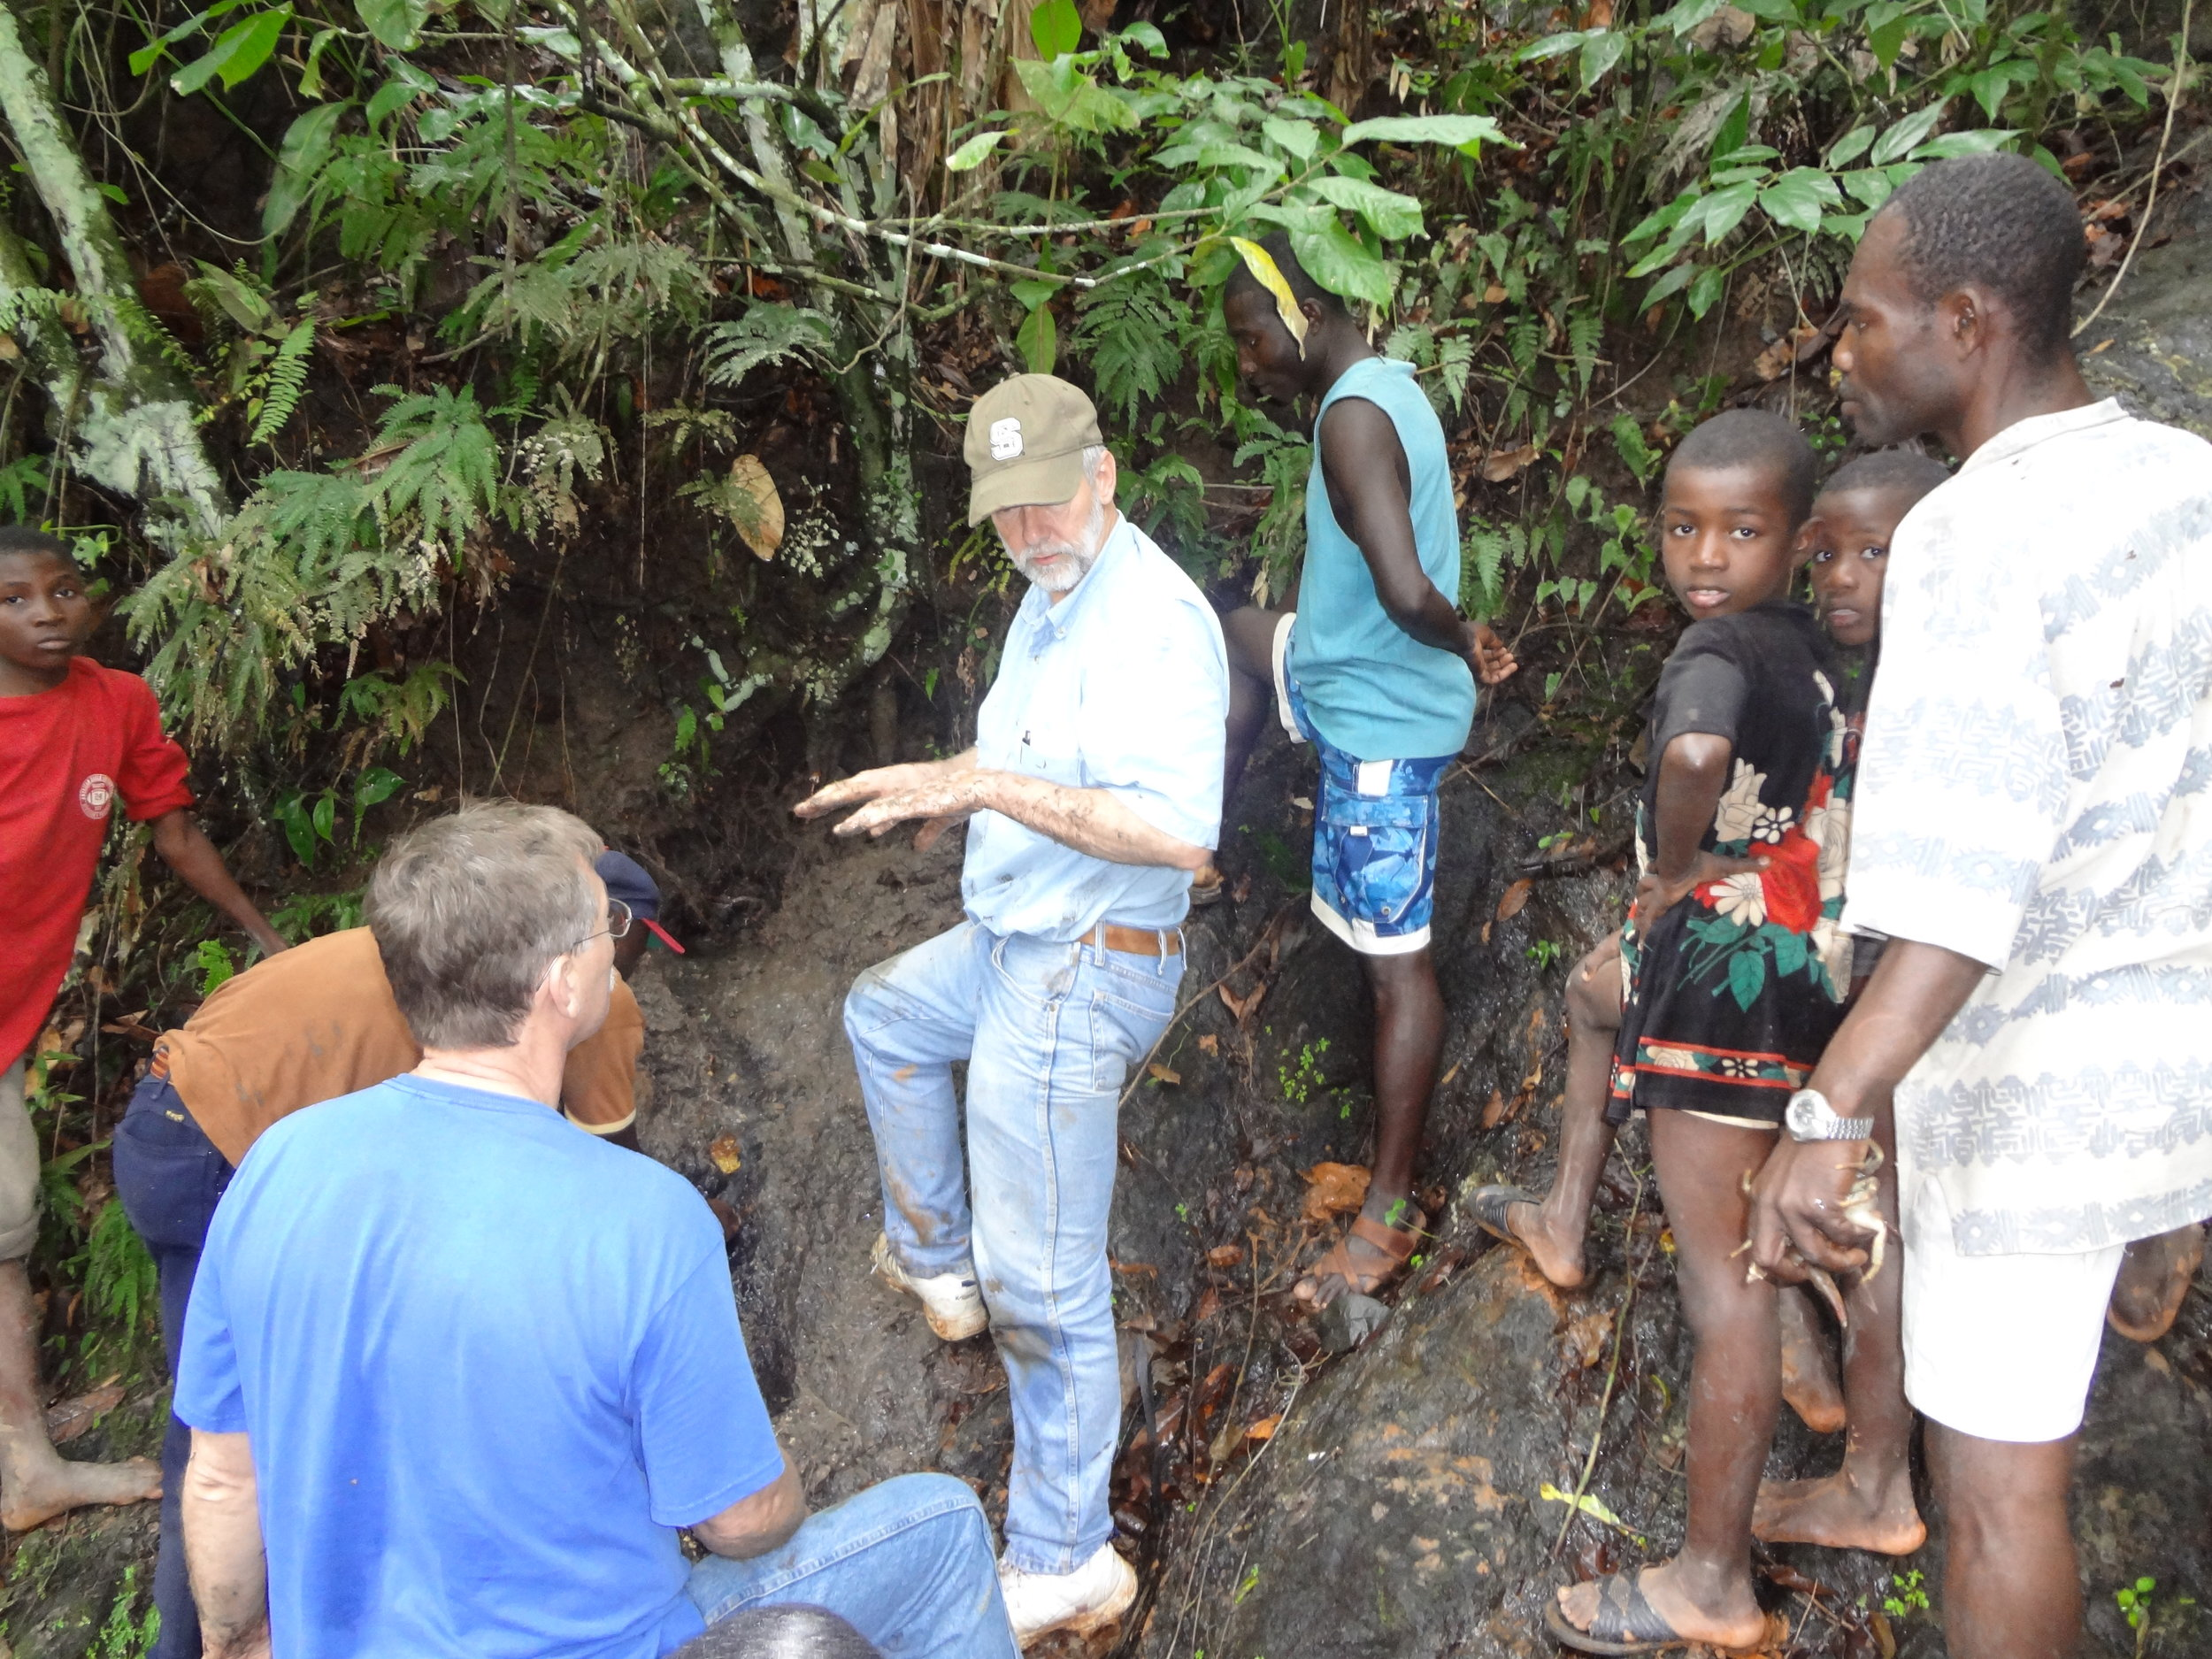 Volunteer engineers and local youth discuss the best ways to capture water from the spring above the health center.